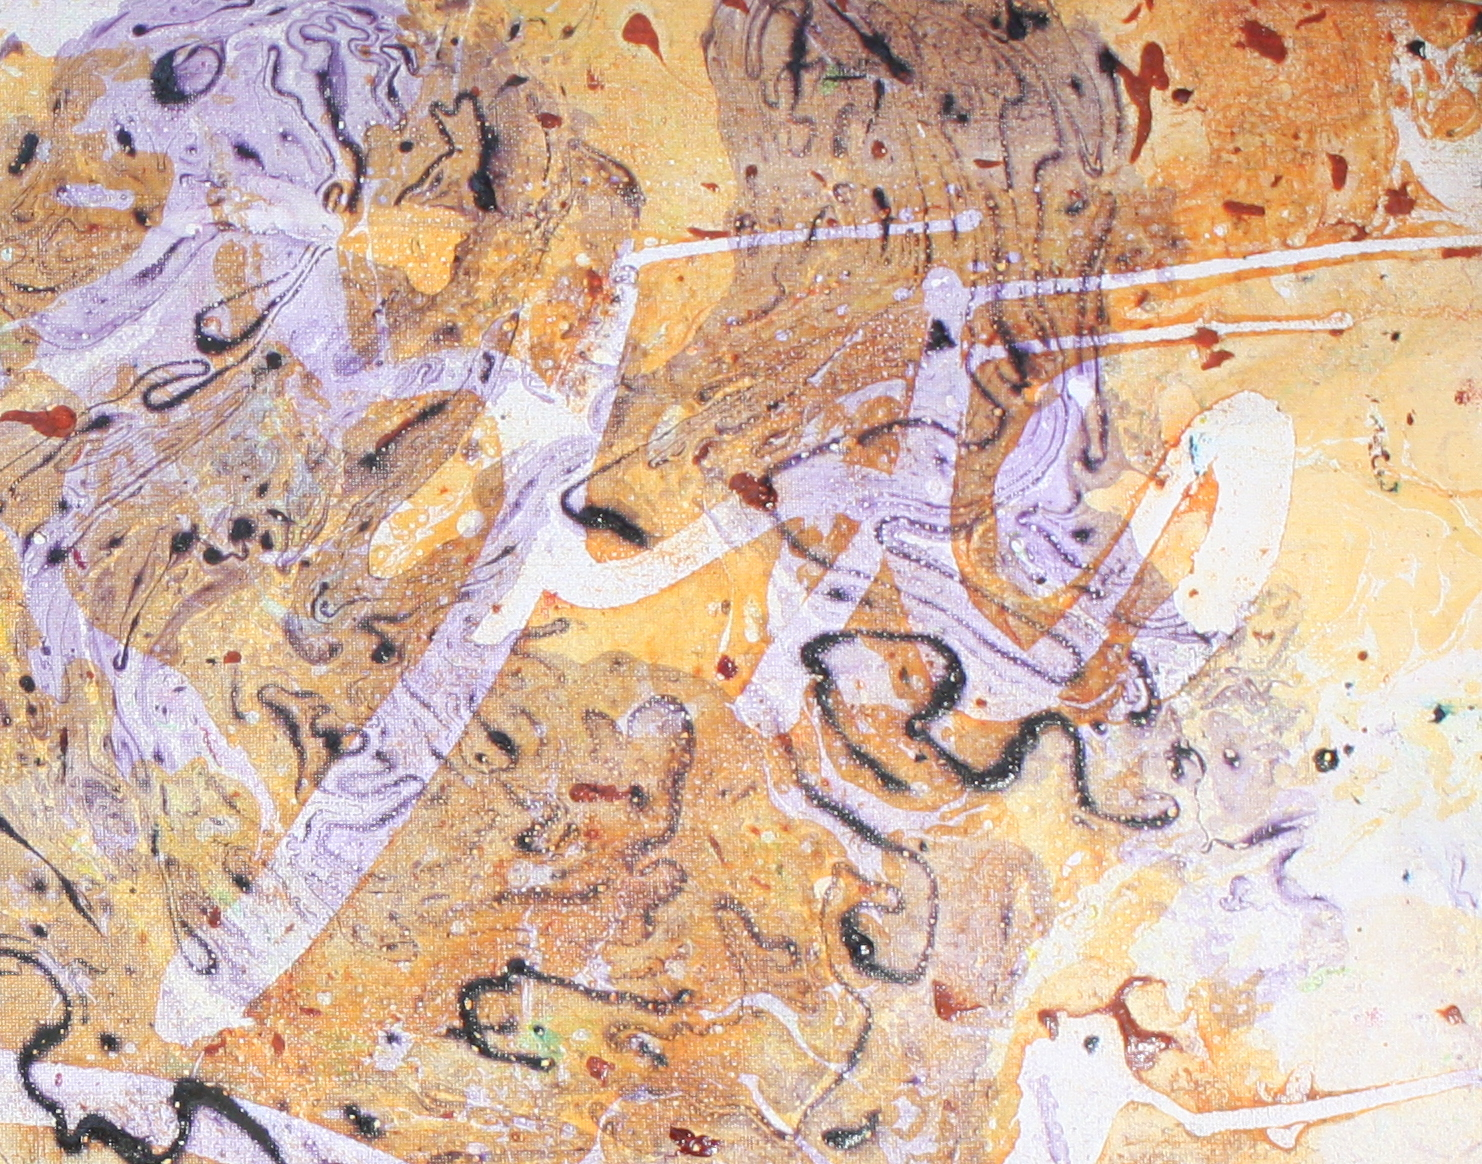 53 painting 50x100 (10)